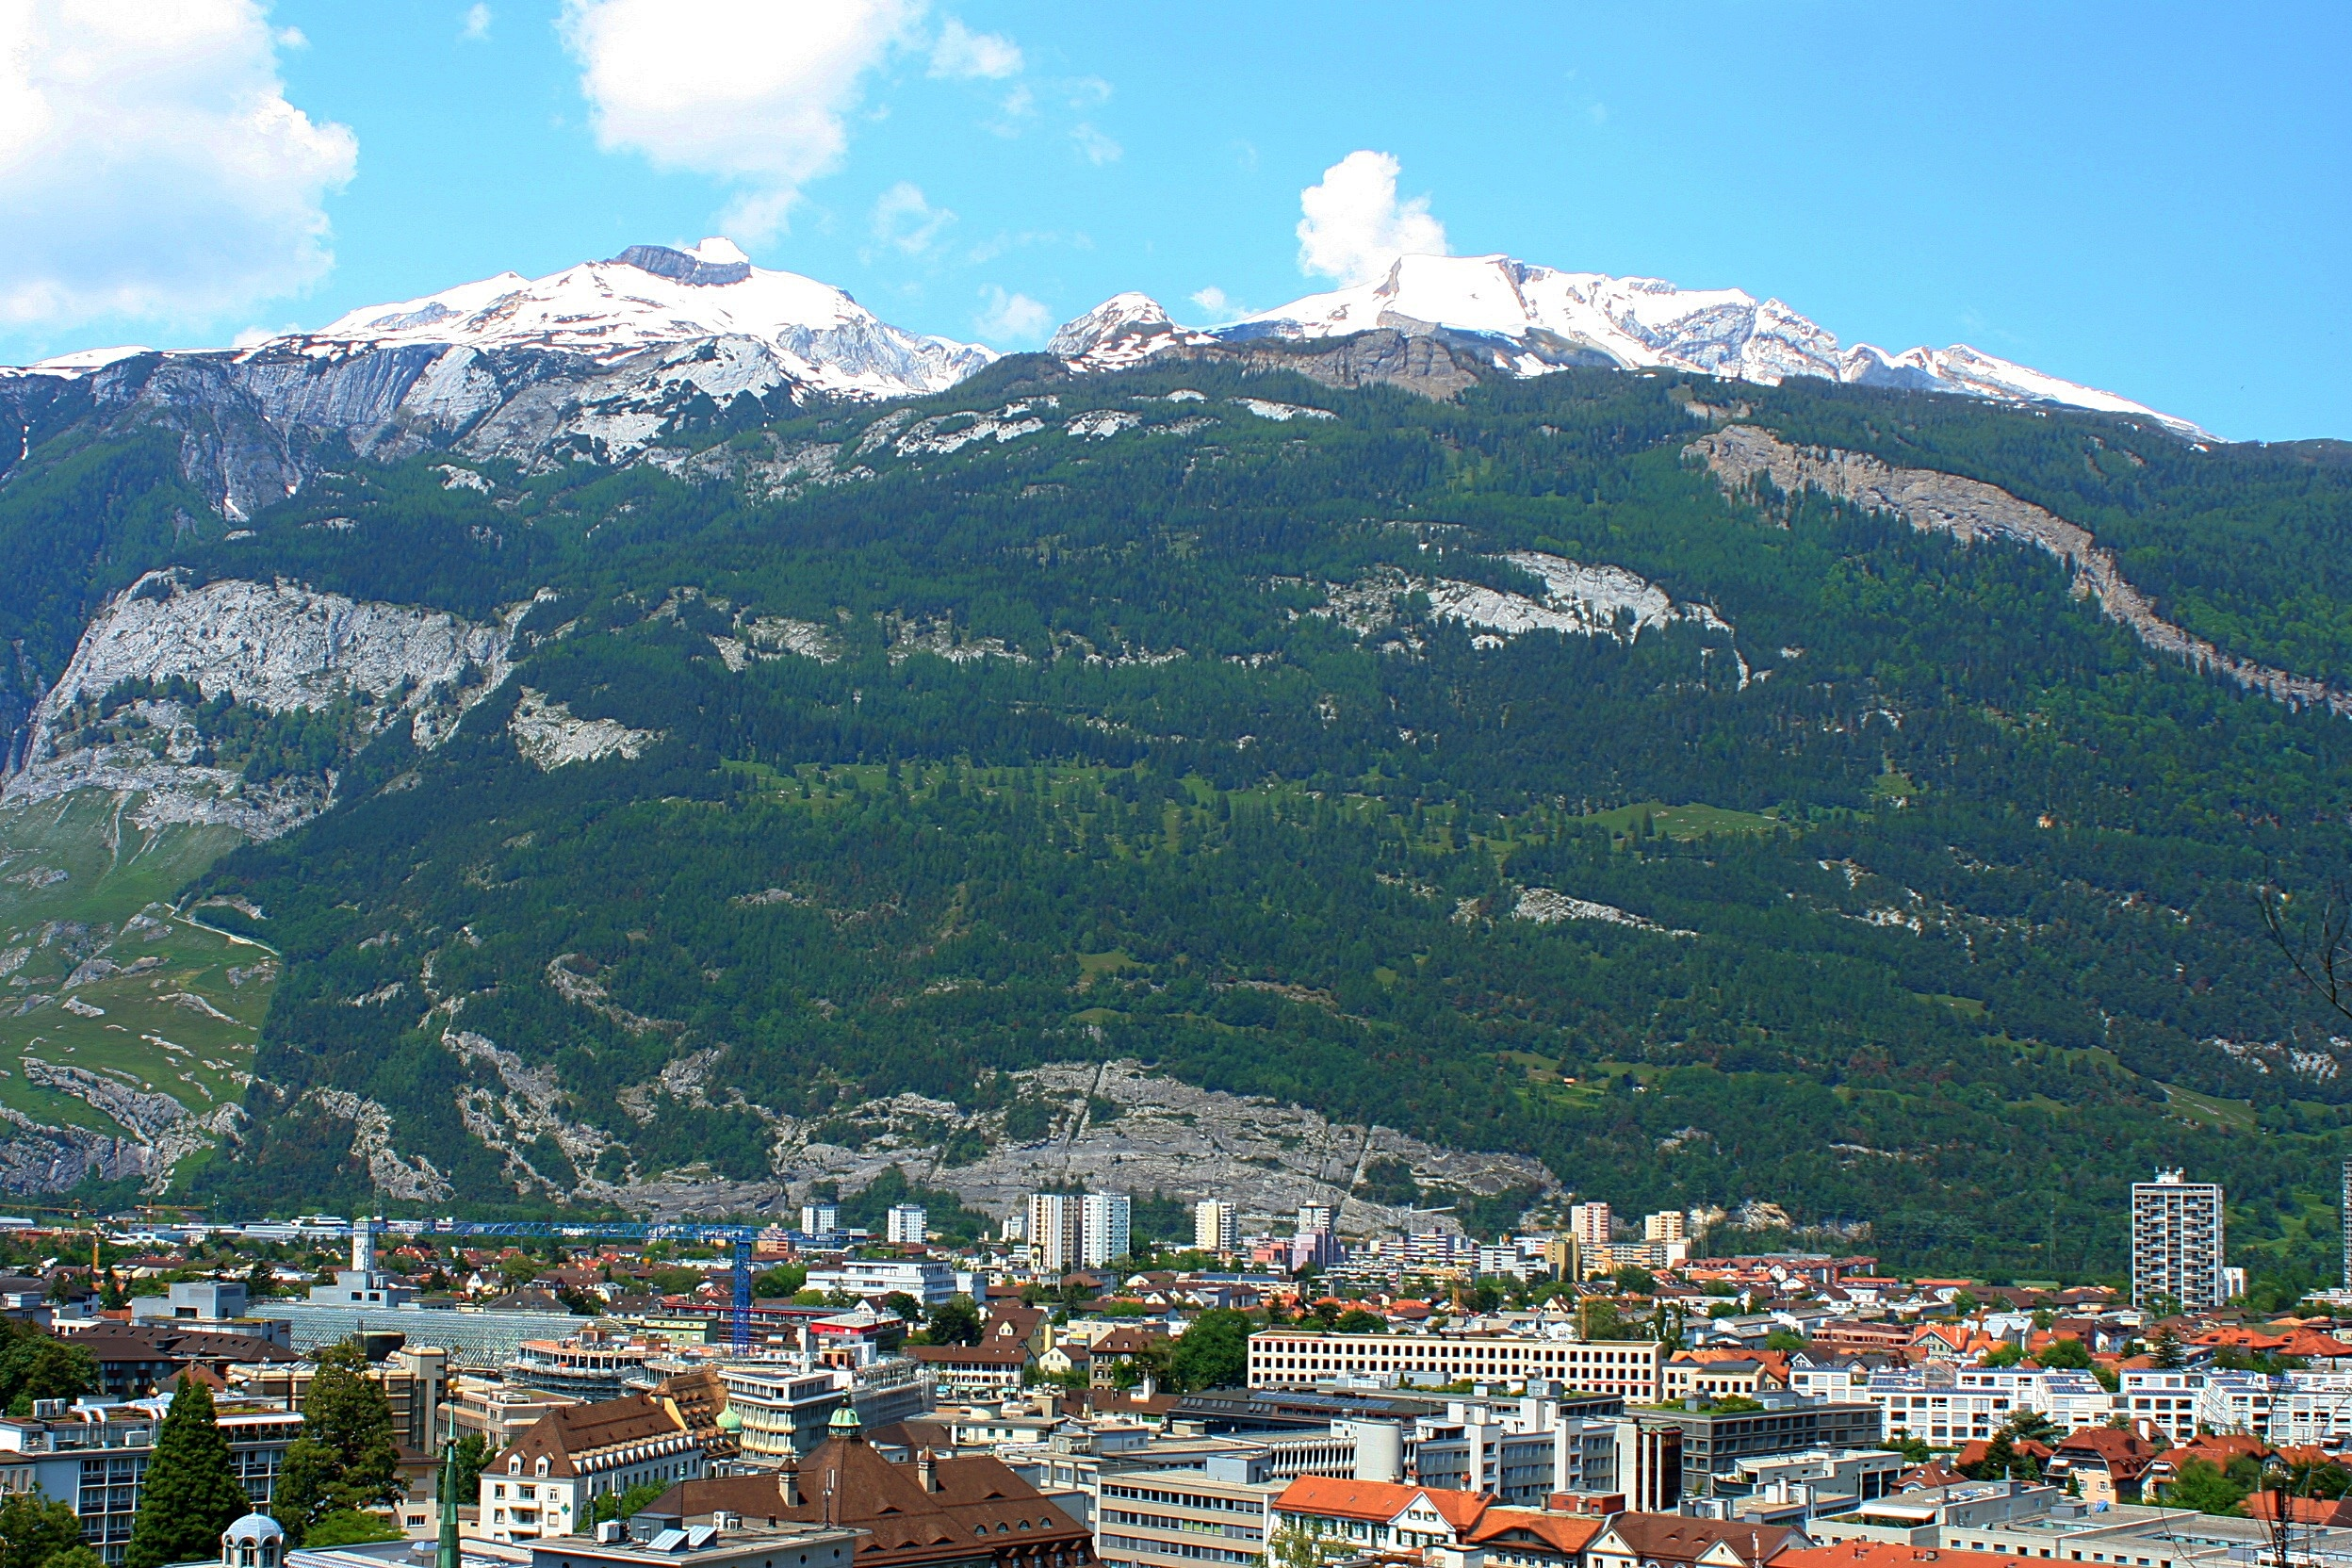 Chur - By far the largest and oldest alpine town in Switzerland